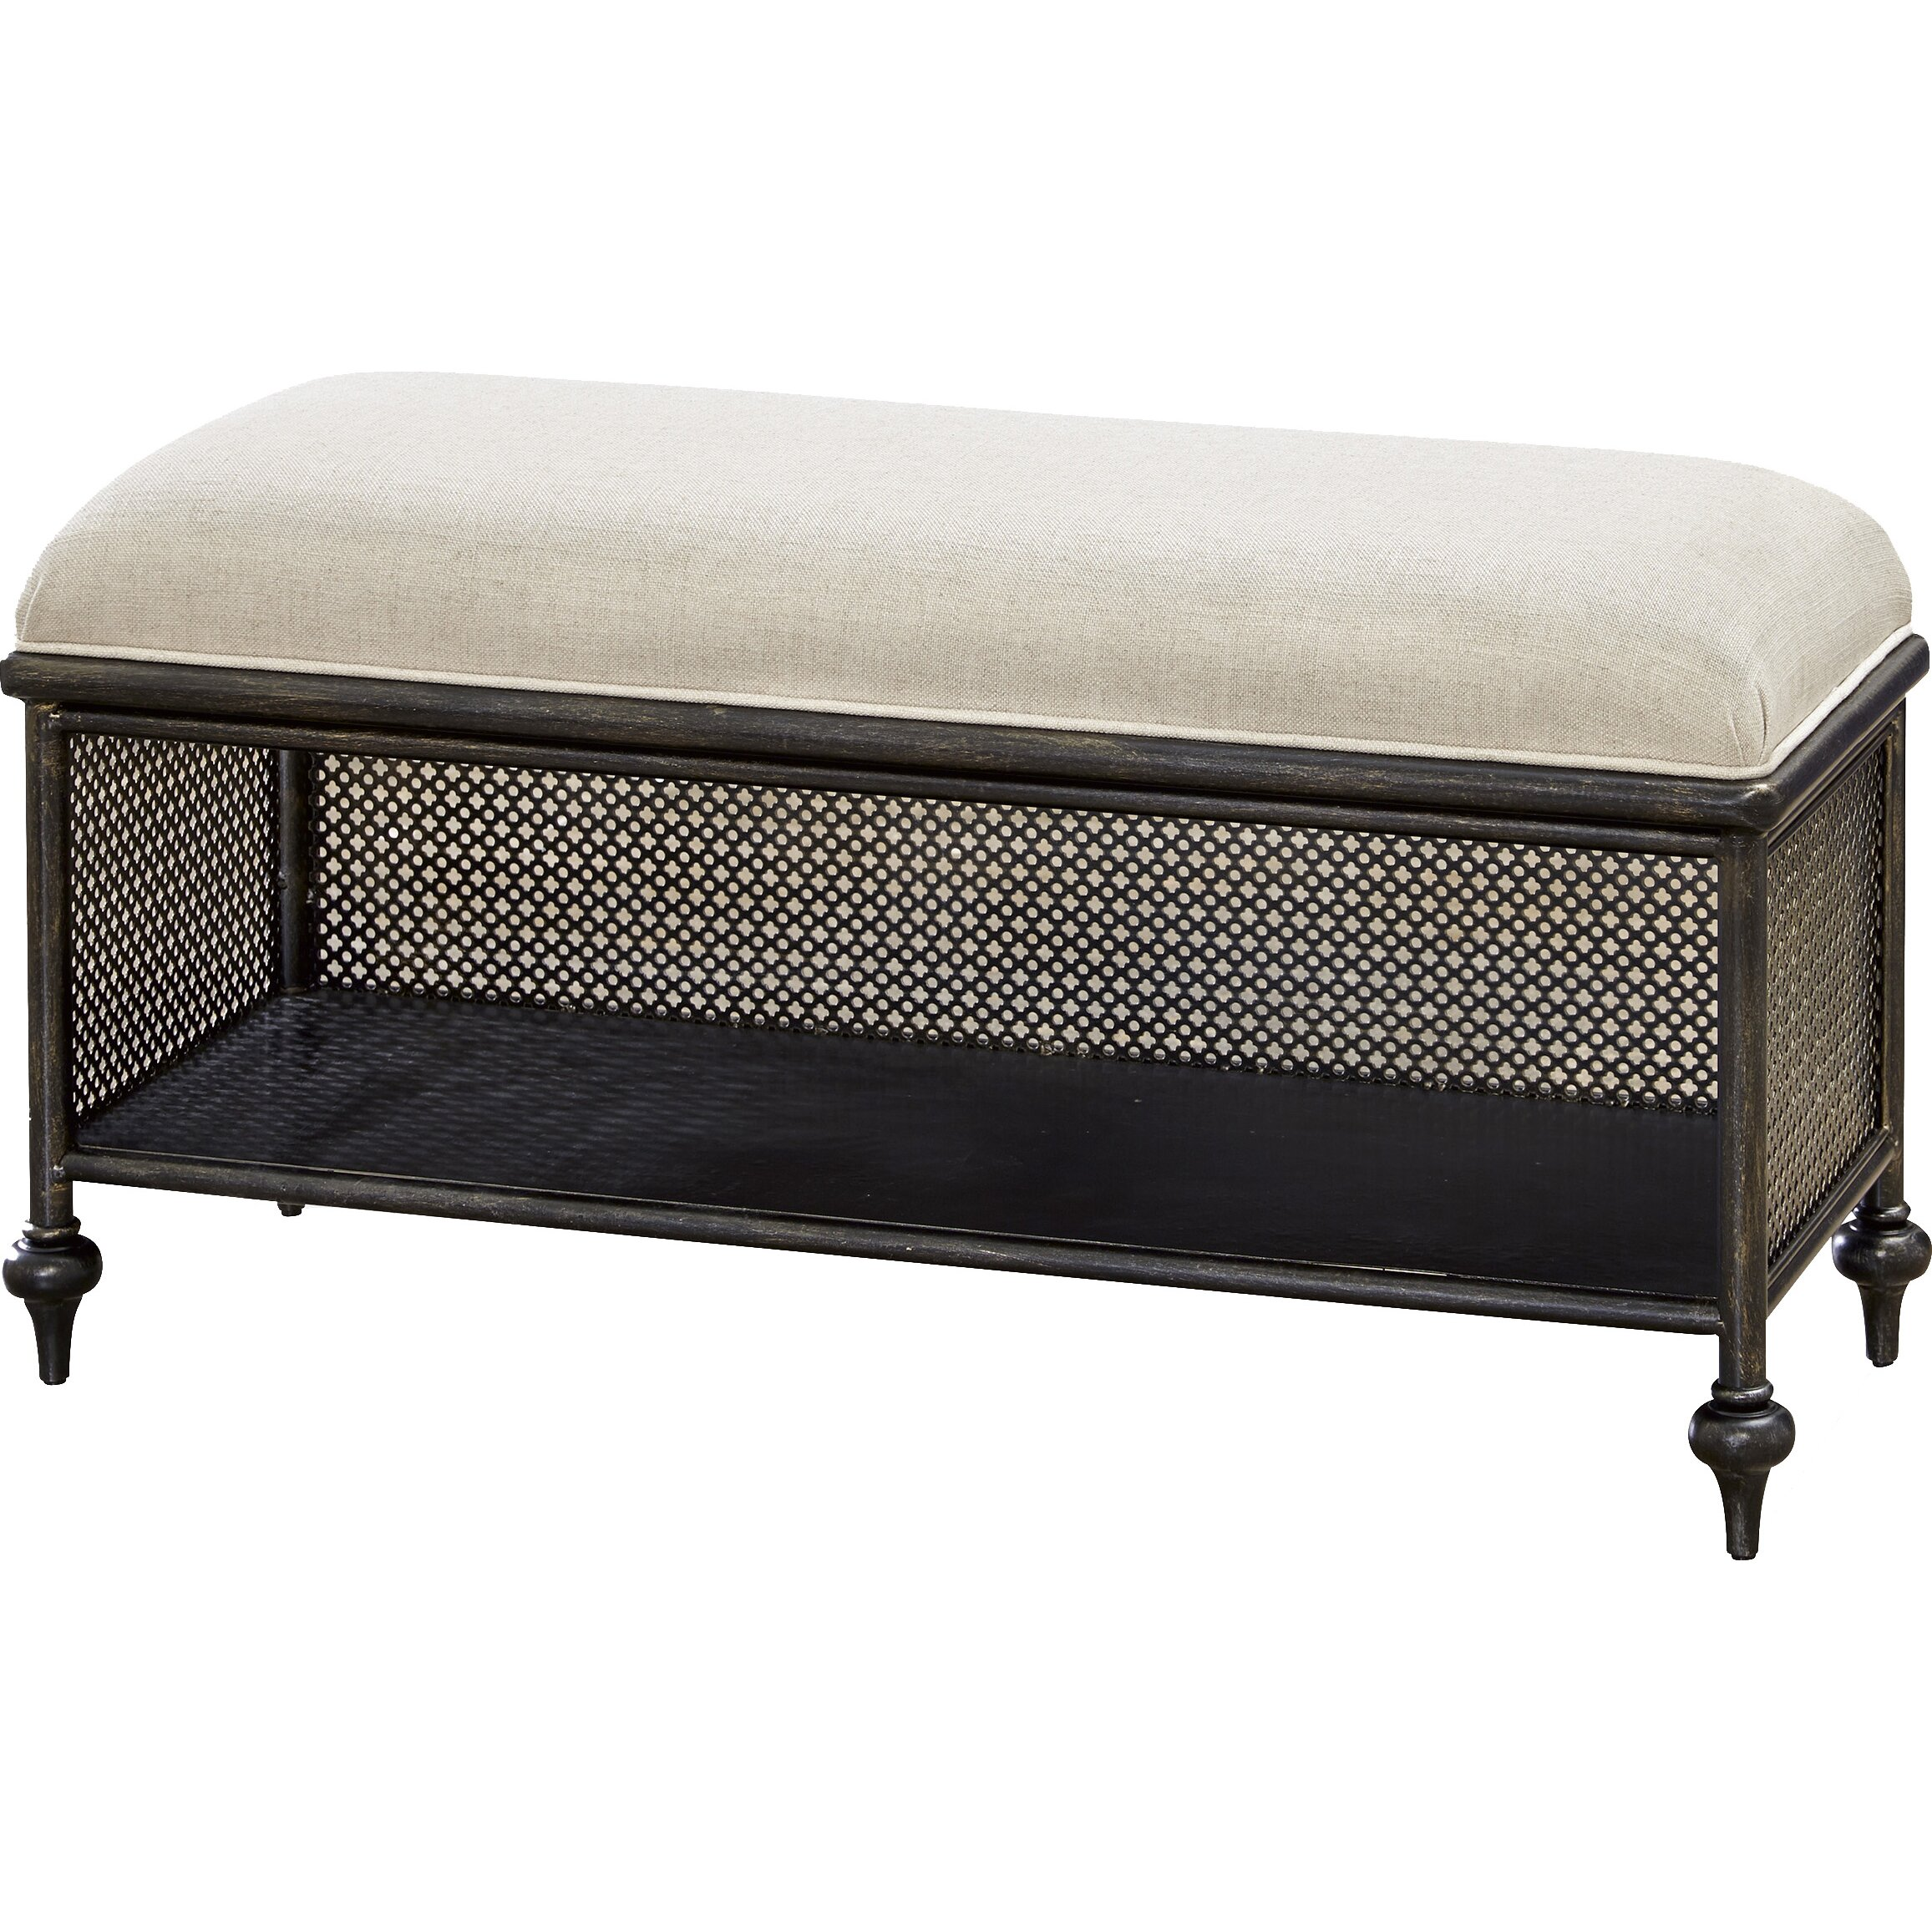 Smartstuff Furniture Penrose Metal Bedroom Bench Wayfair